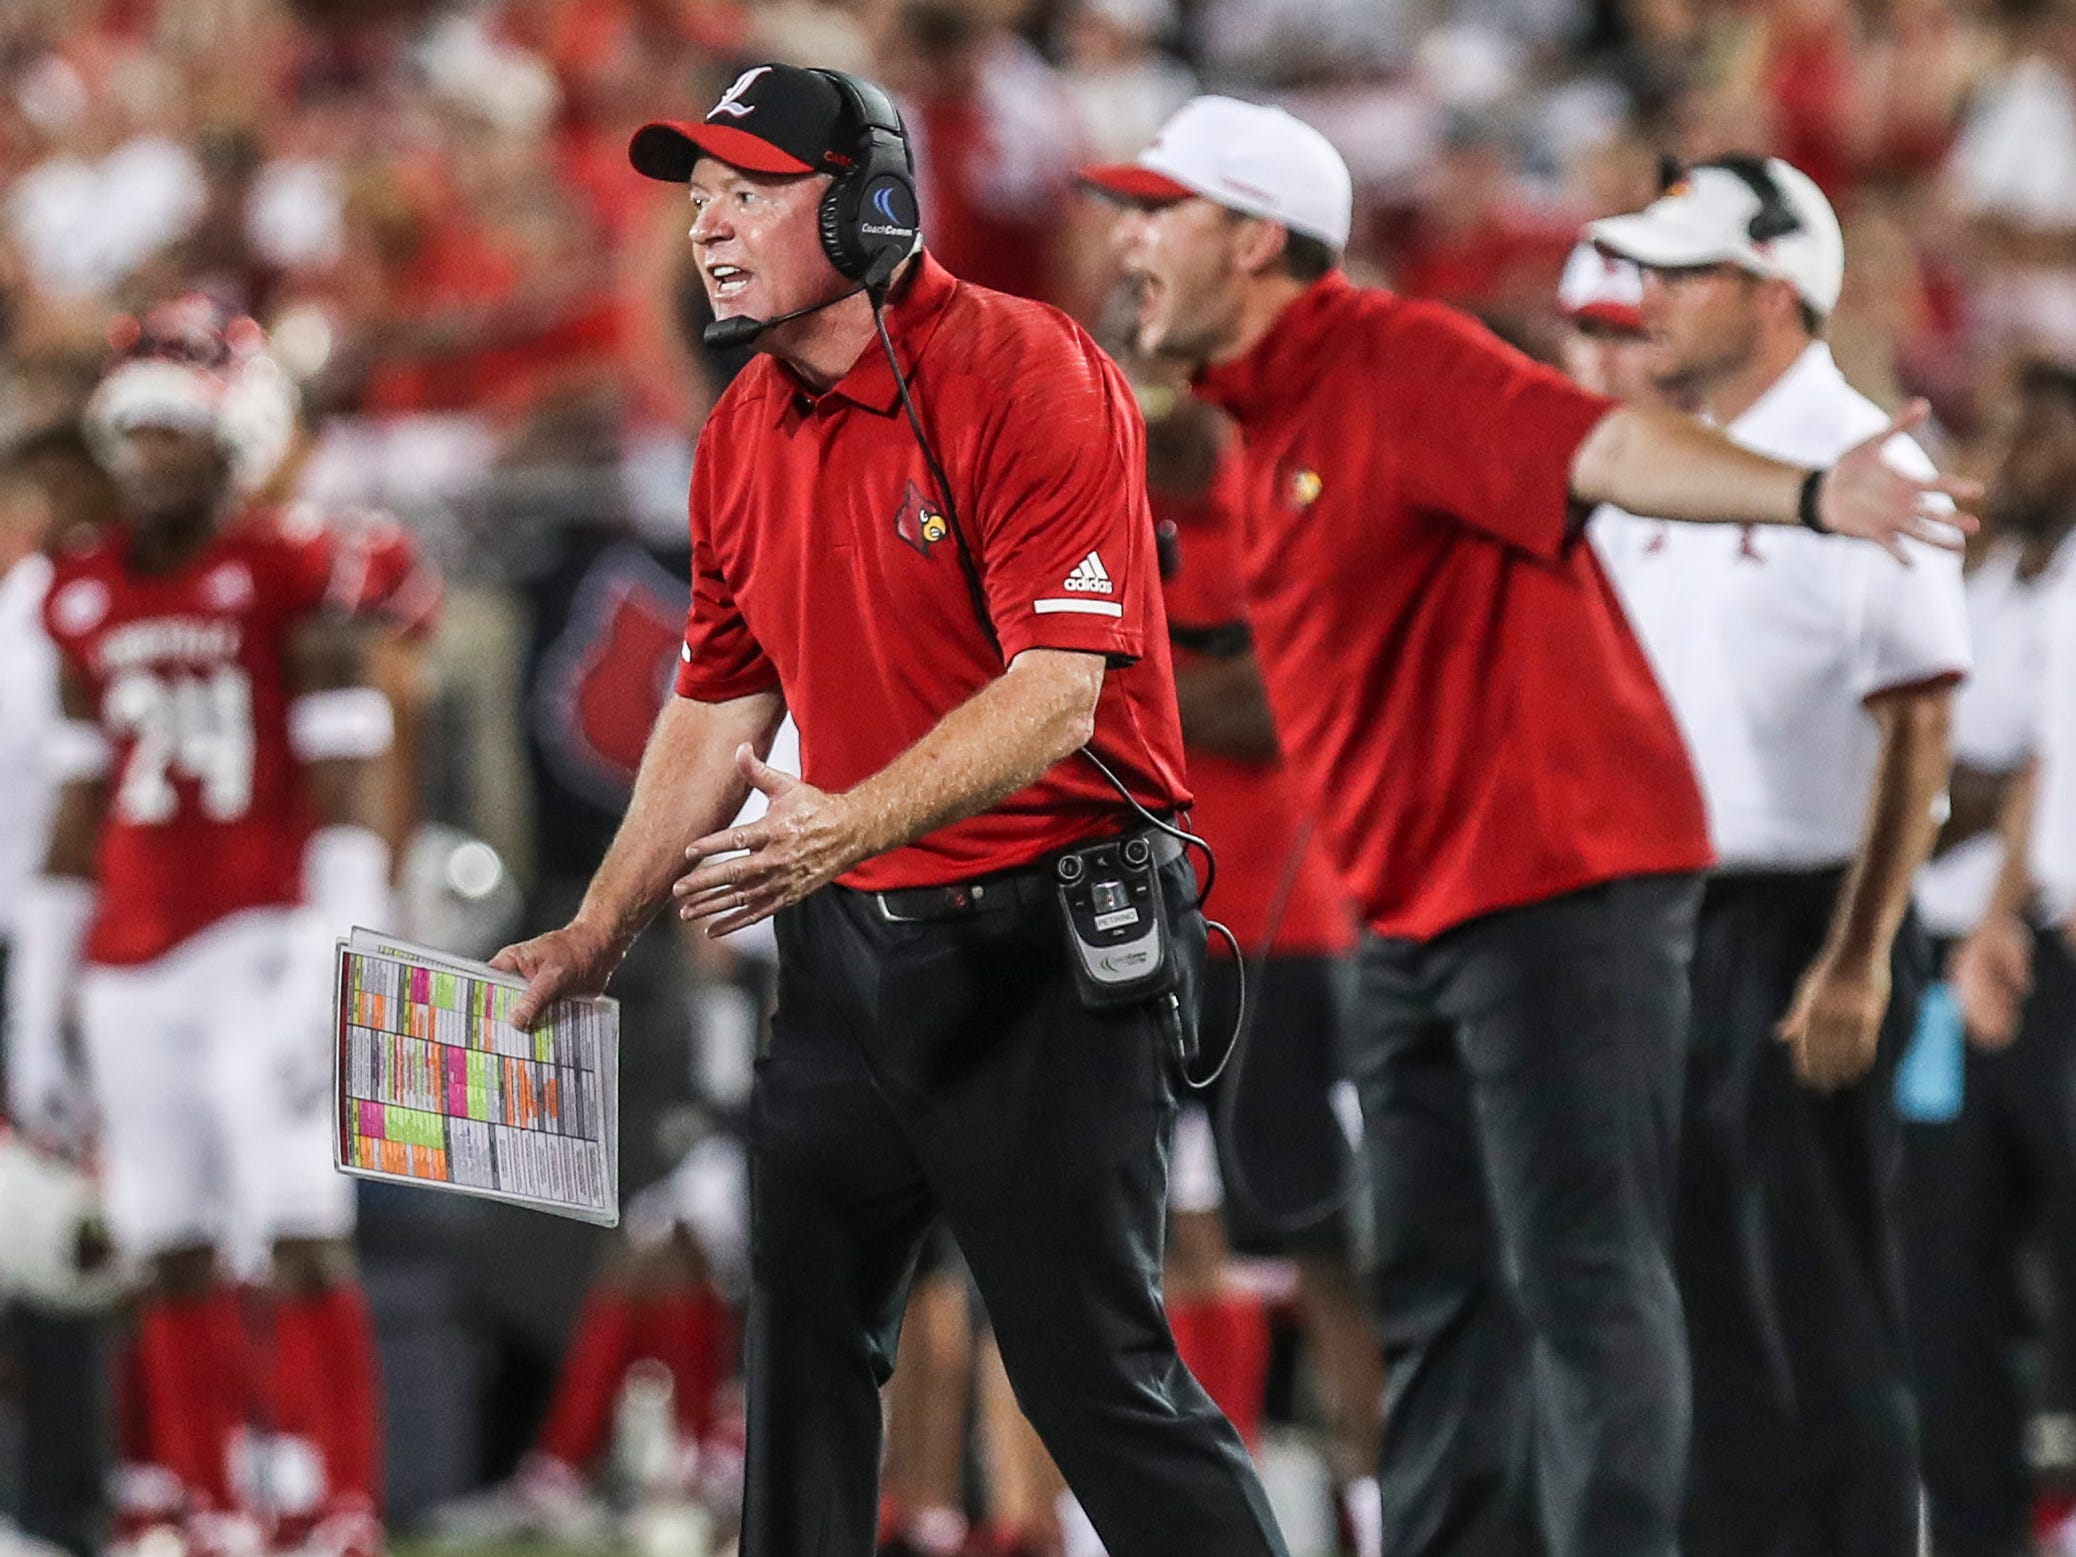 Louisville's Bobby Petrino was upset in the first half as visiting Western Kentucky went up 14-0 on the Cardinals Saturday, Sept. 15, 2018.